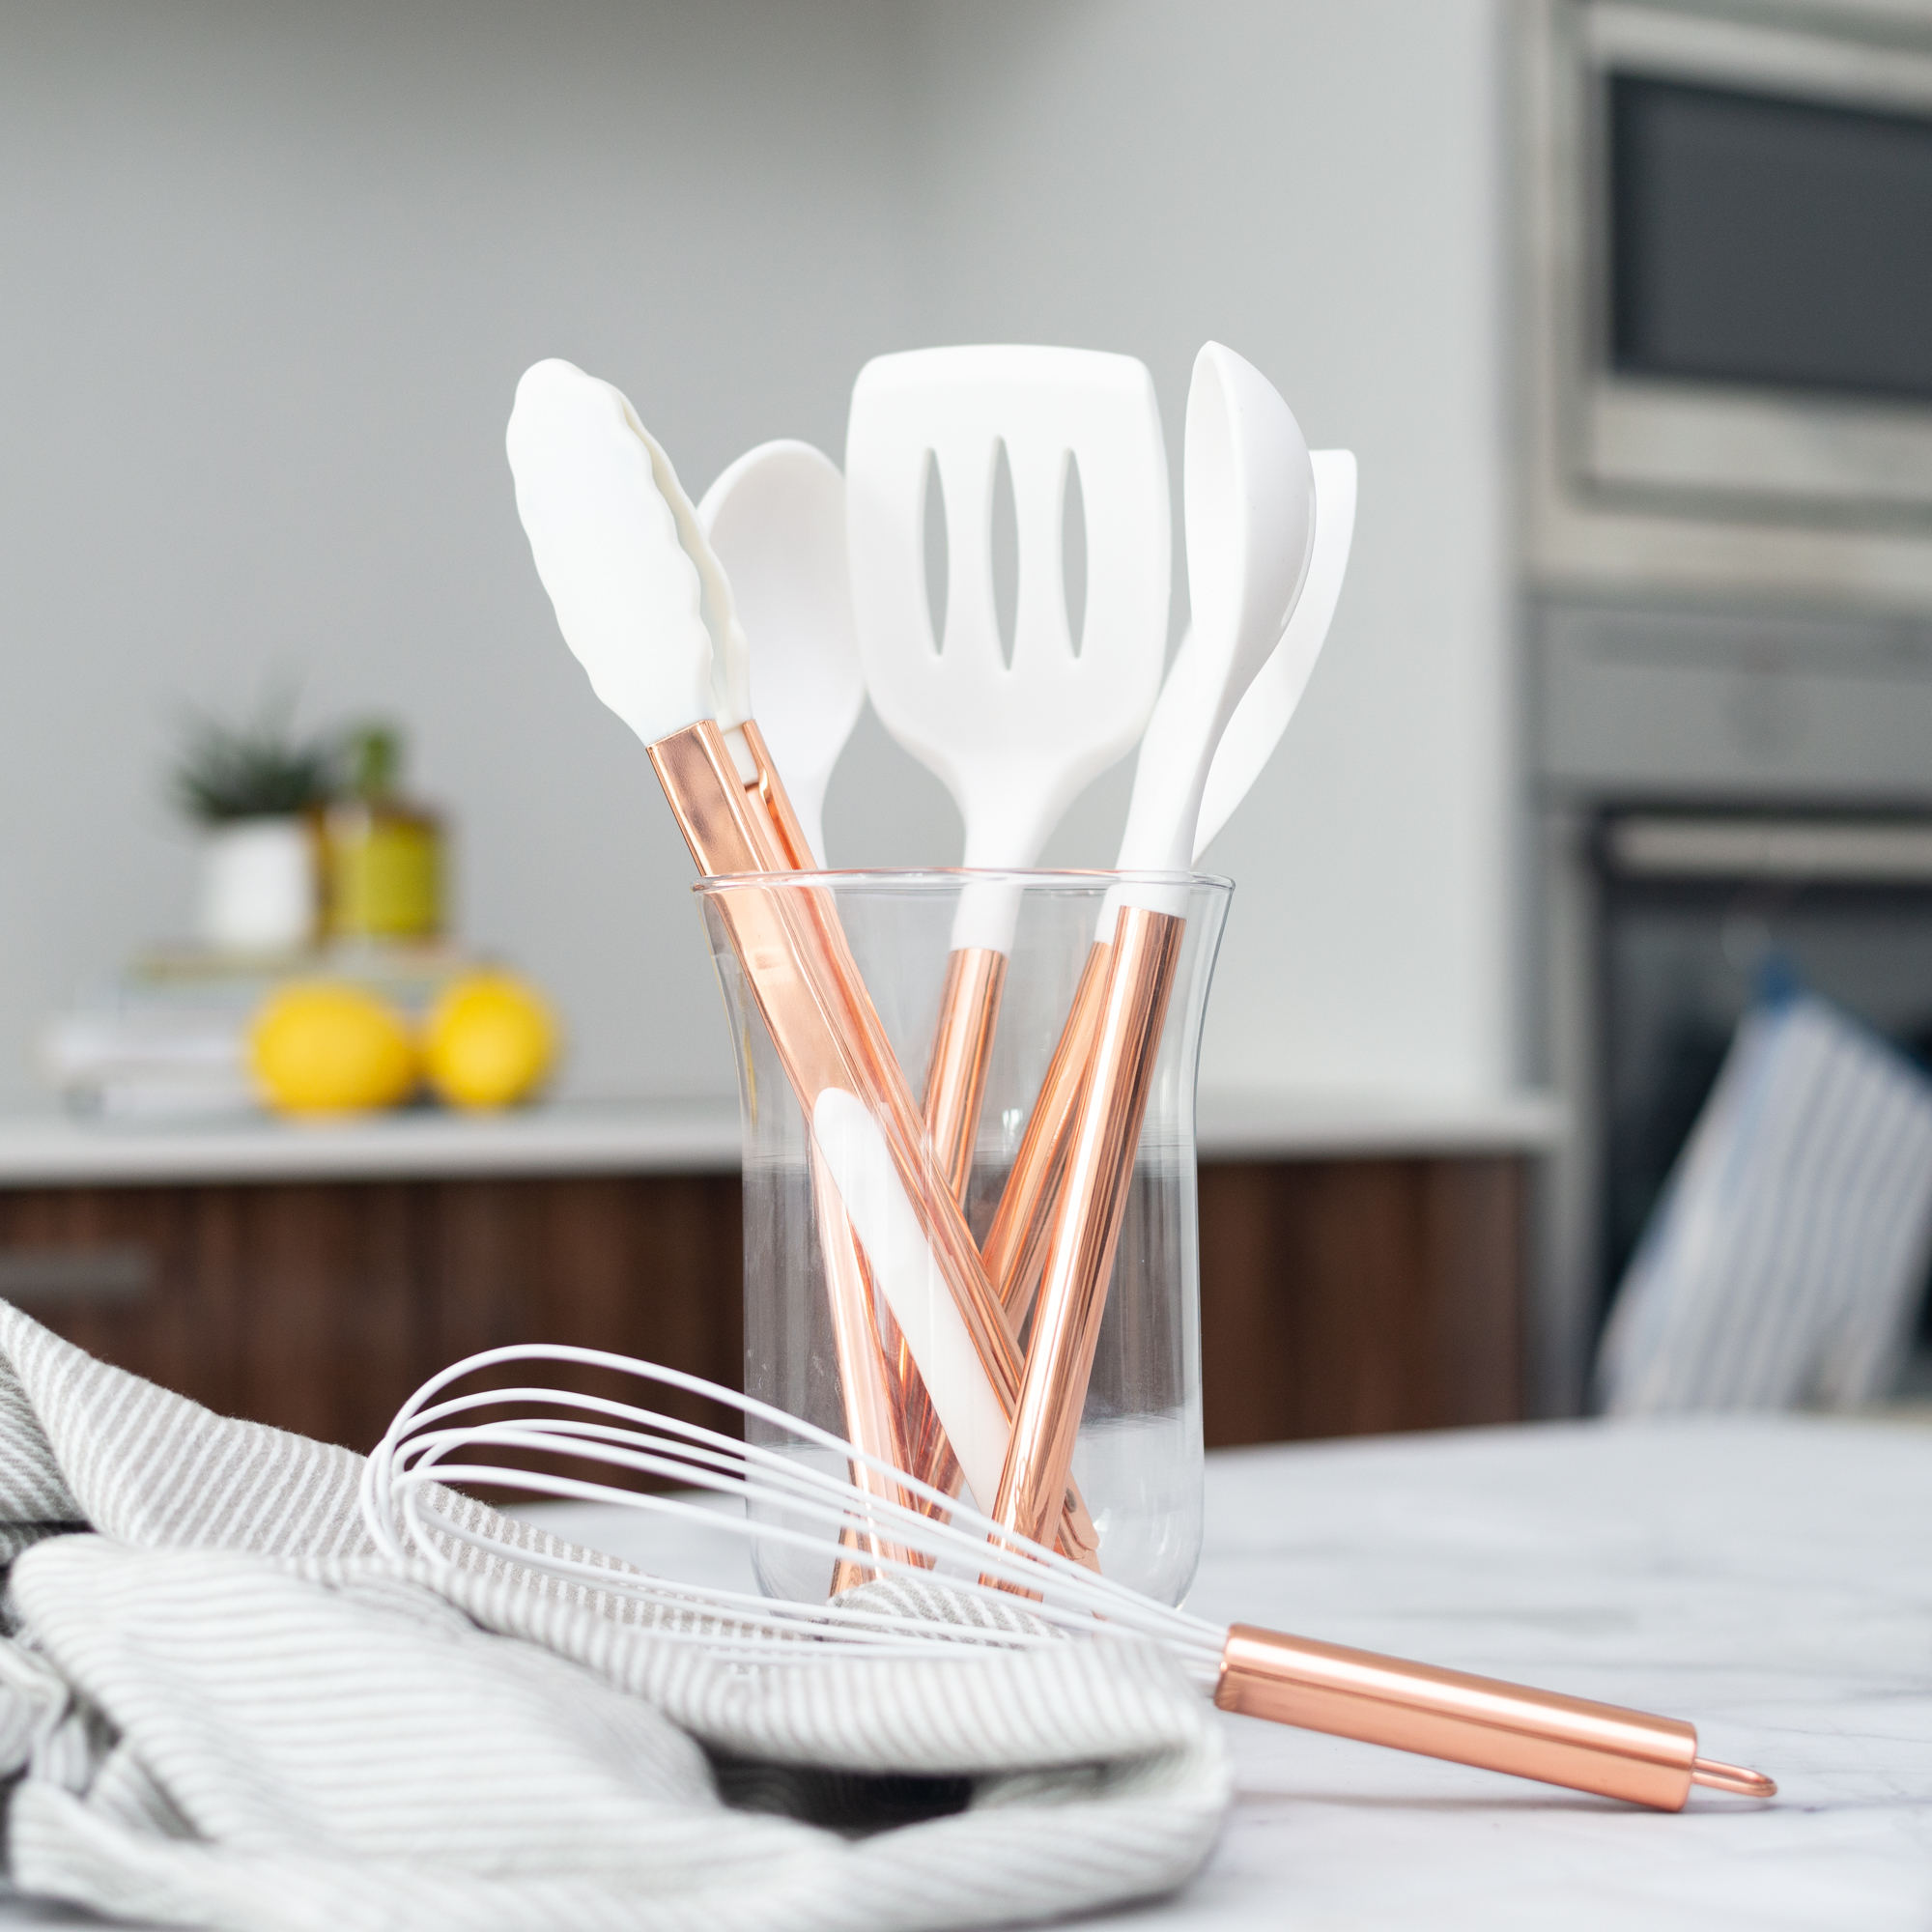 White Amp Copper Silicone Utensils 6 Pcs Styled Settings